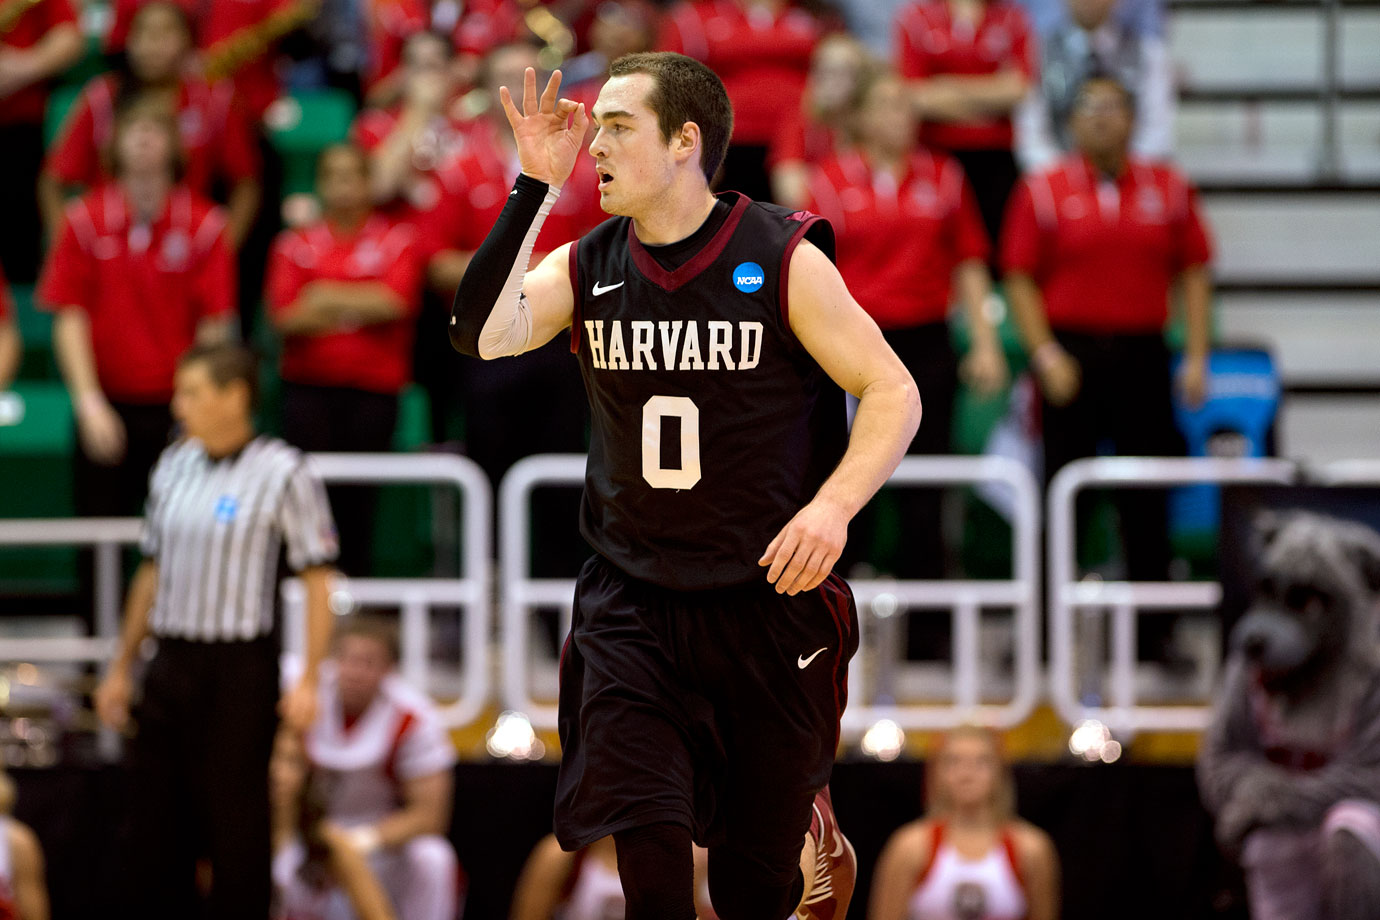 Laurent Rivard scored 17 points, including five threes, to help 14th-seeded Harvard pull off a 68-62 win over No. 3 New Mexico. The Ivy League advanced for the first time since Cornell made the regional semifinals in 2010. It also was Harvard's first NCAA tourney win.